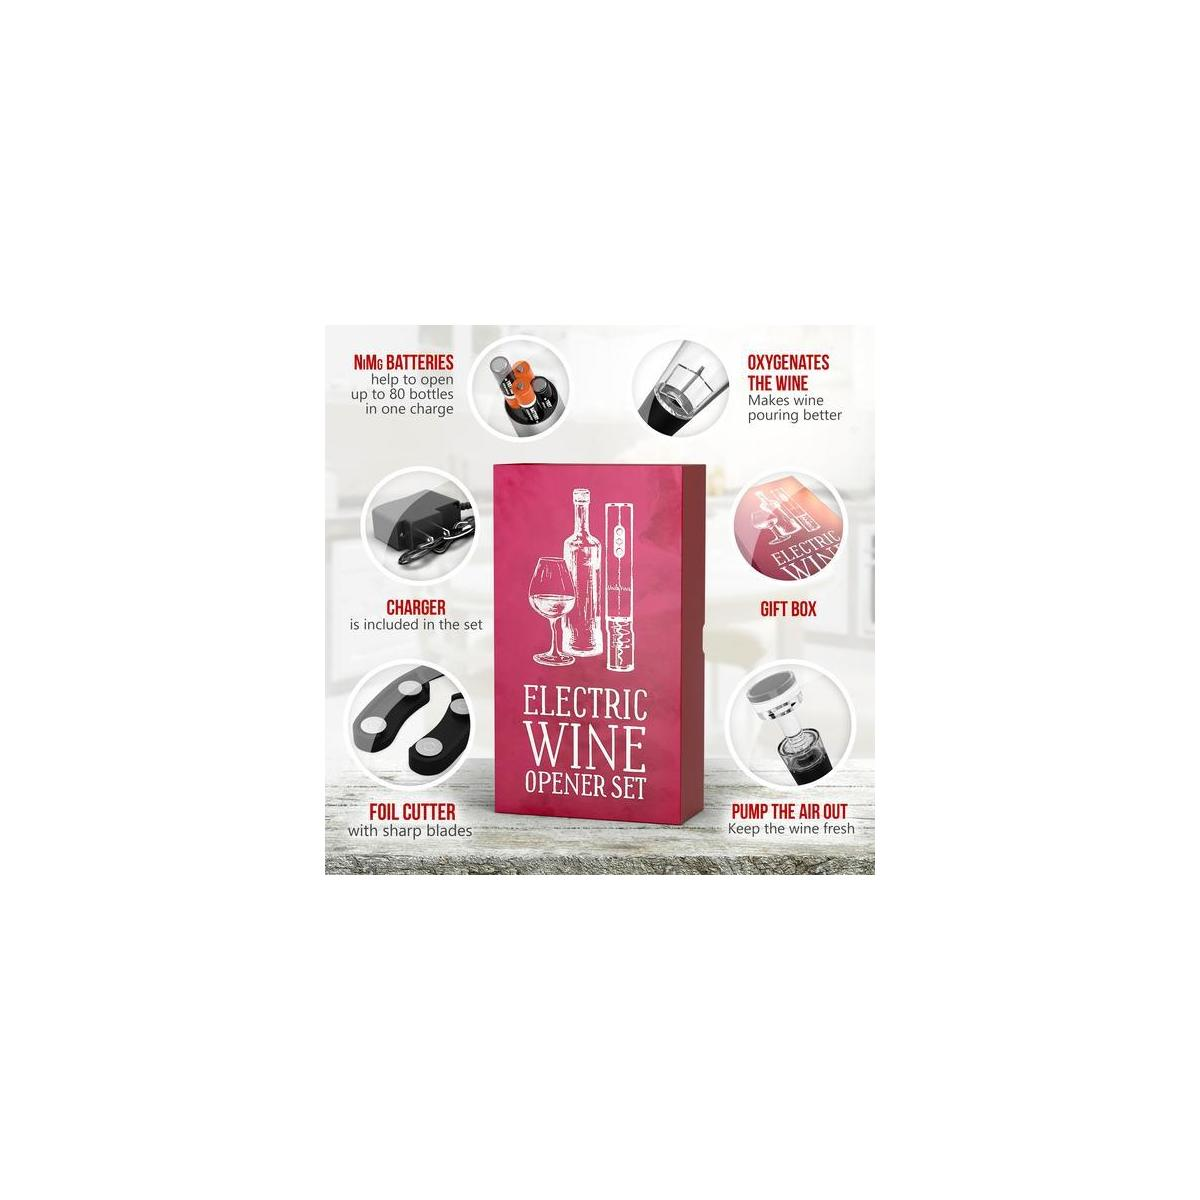 Electric Wine Opener with Charger - Wine Lover Gift Set - Summer Holiday Birthday Wedding Kit with Batteries and Foil Cutter Uncle Viner G105